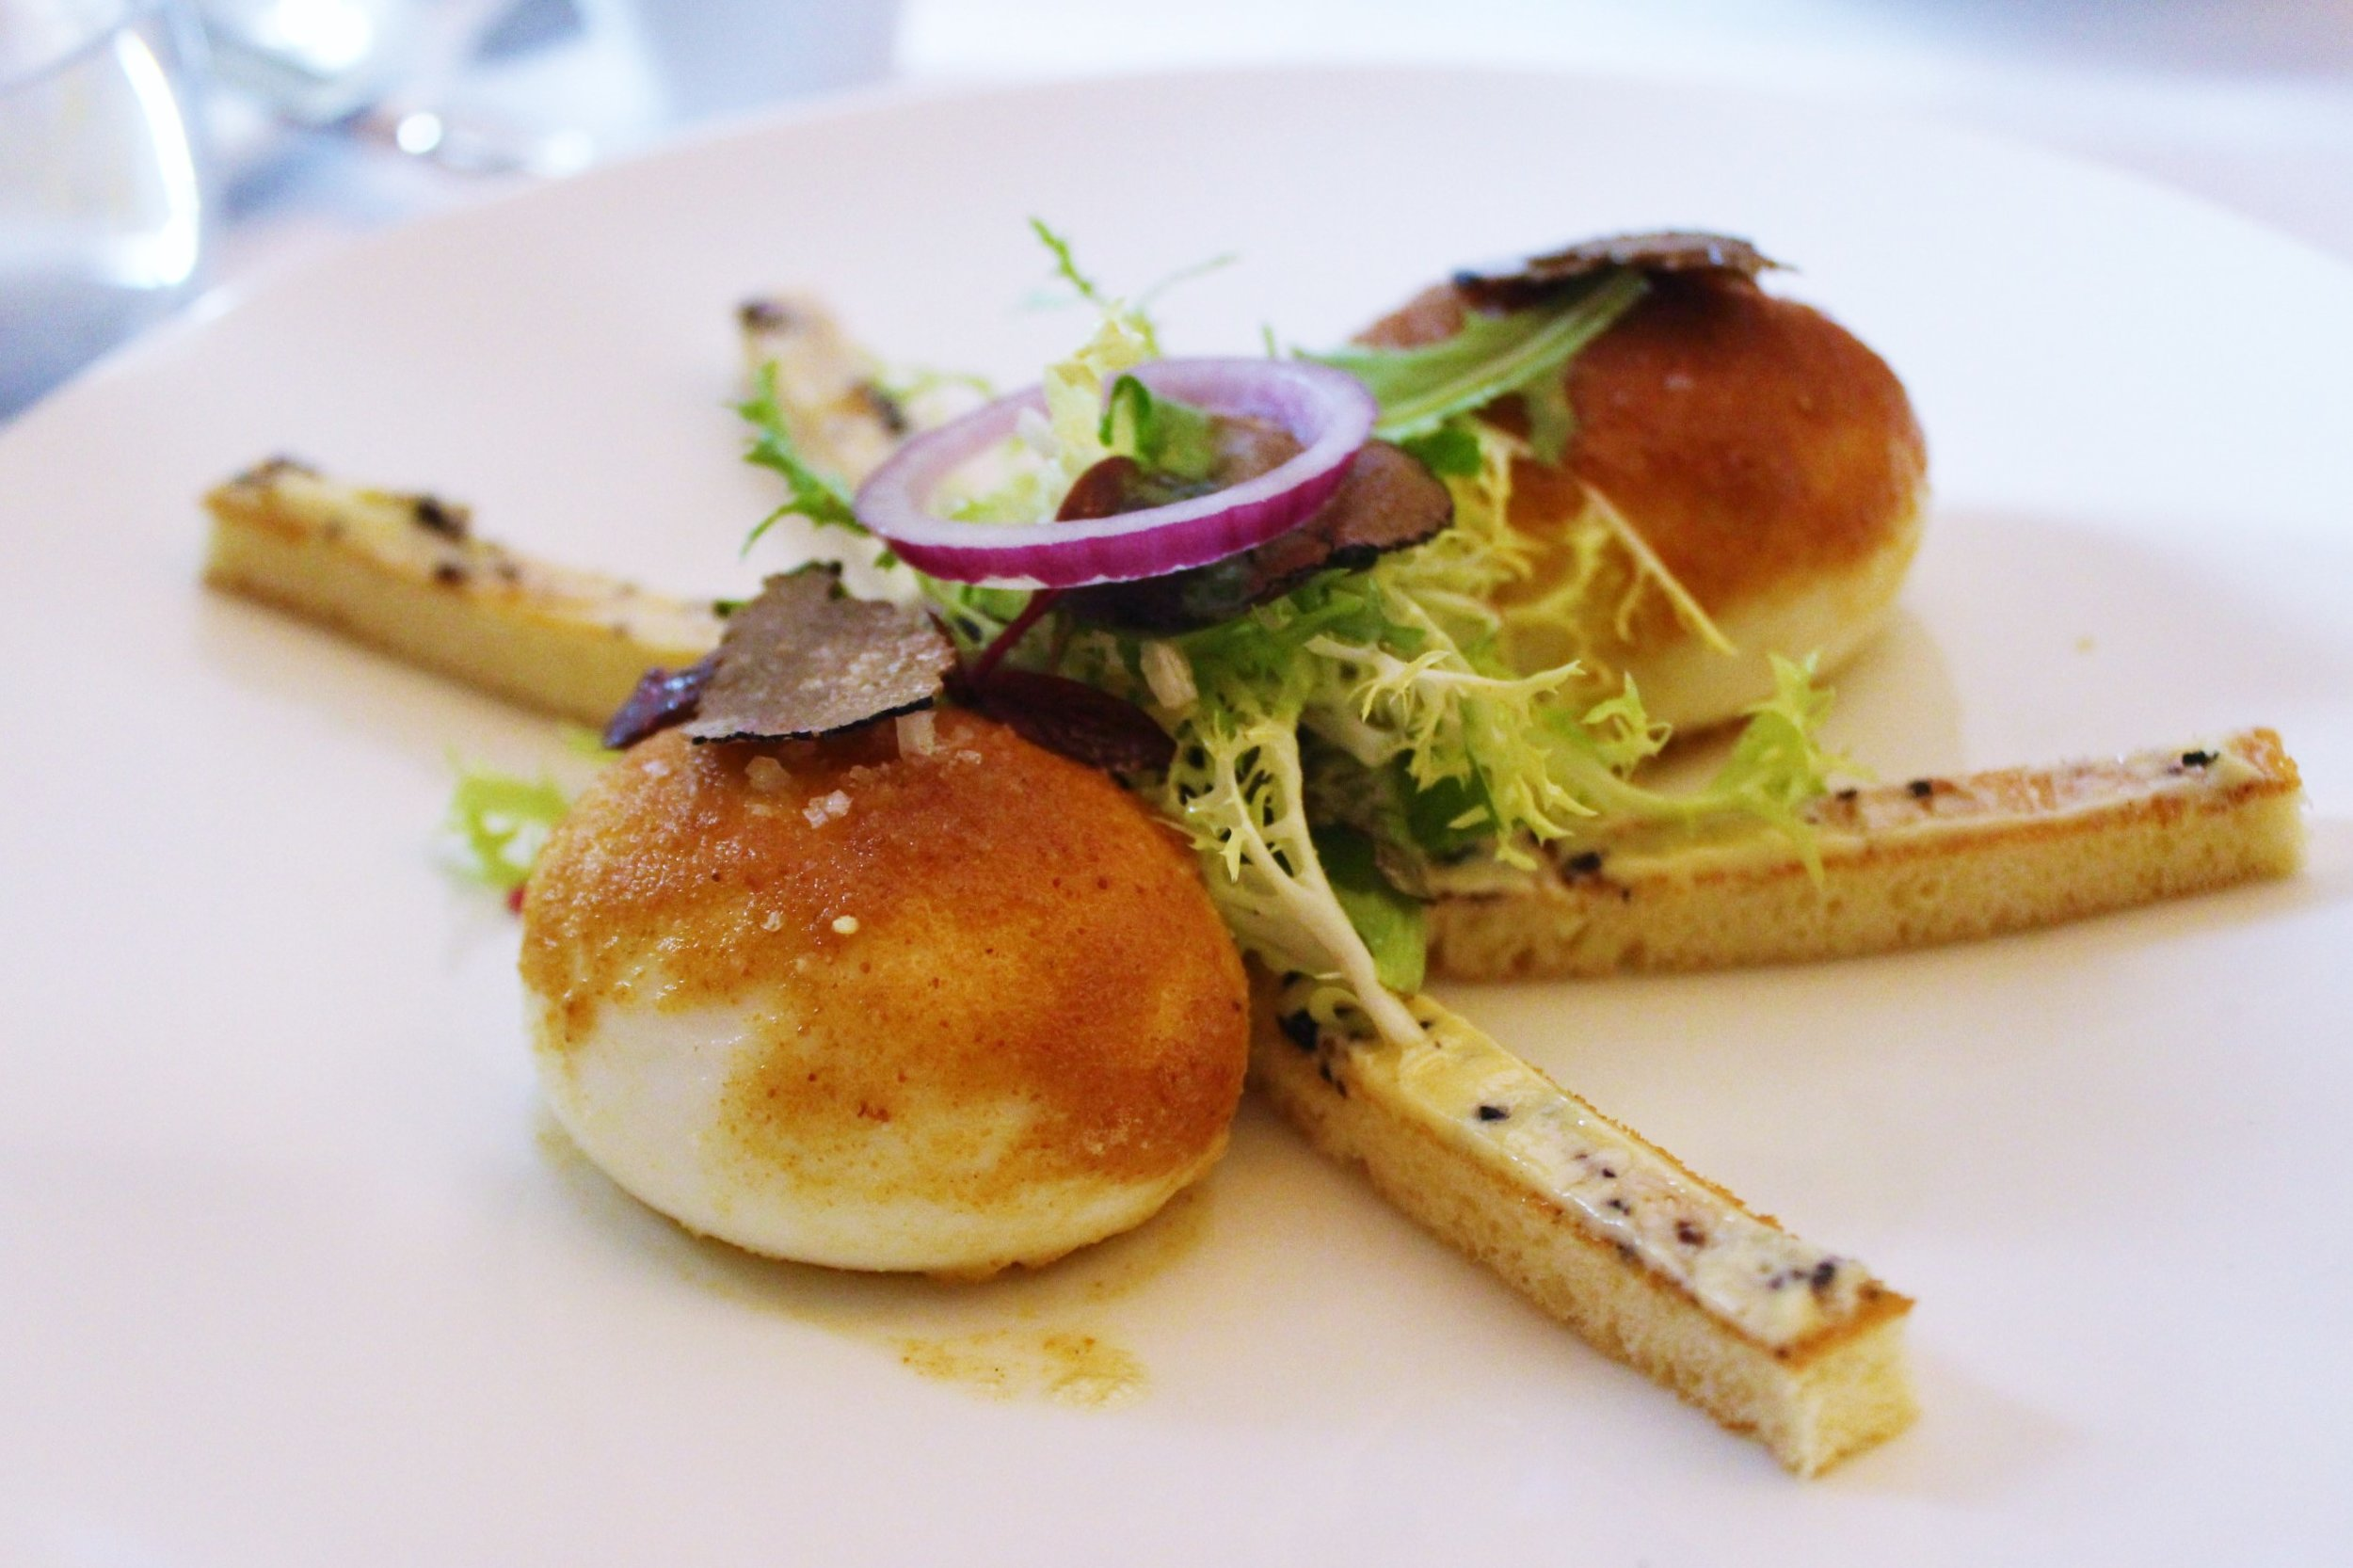 Soft-Boiled Eggs rolled in Breadcrumbs, Truffled Butter Toasts at Le Violon D'Ingres in Paris